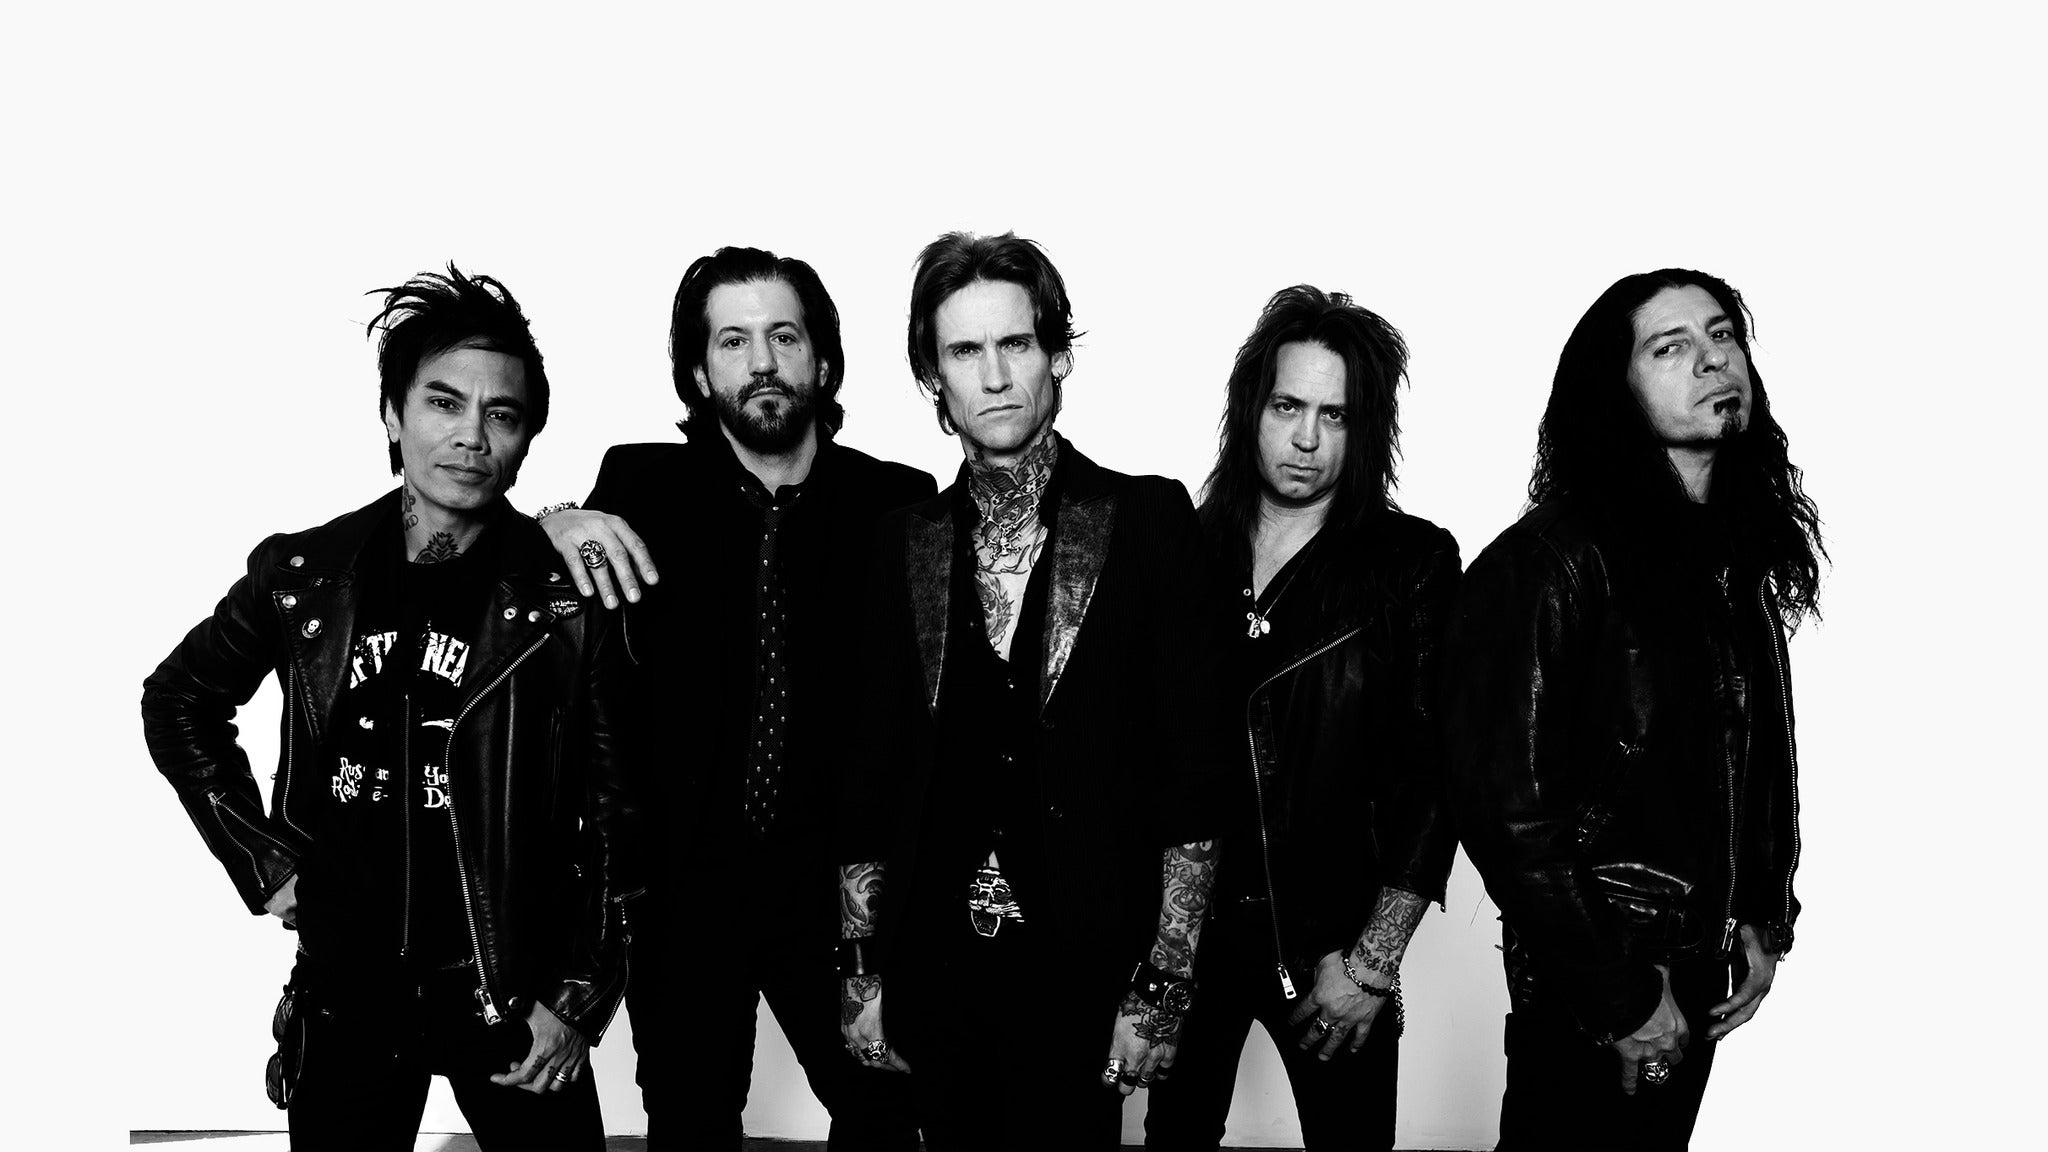 Buckcherry w/ P.O.D. at BLK Live